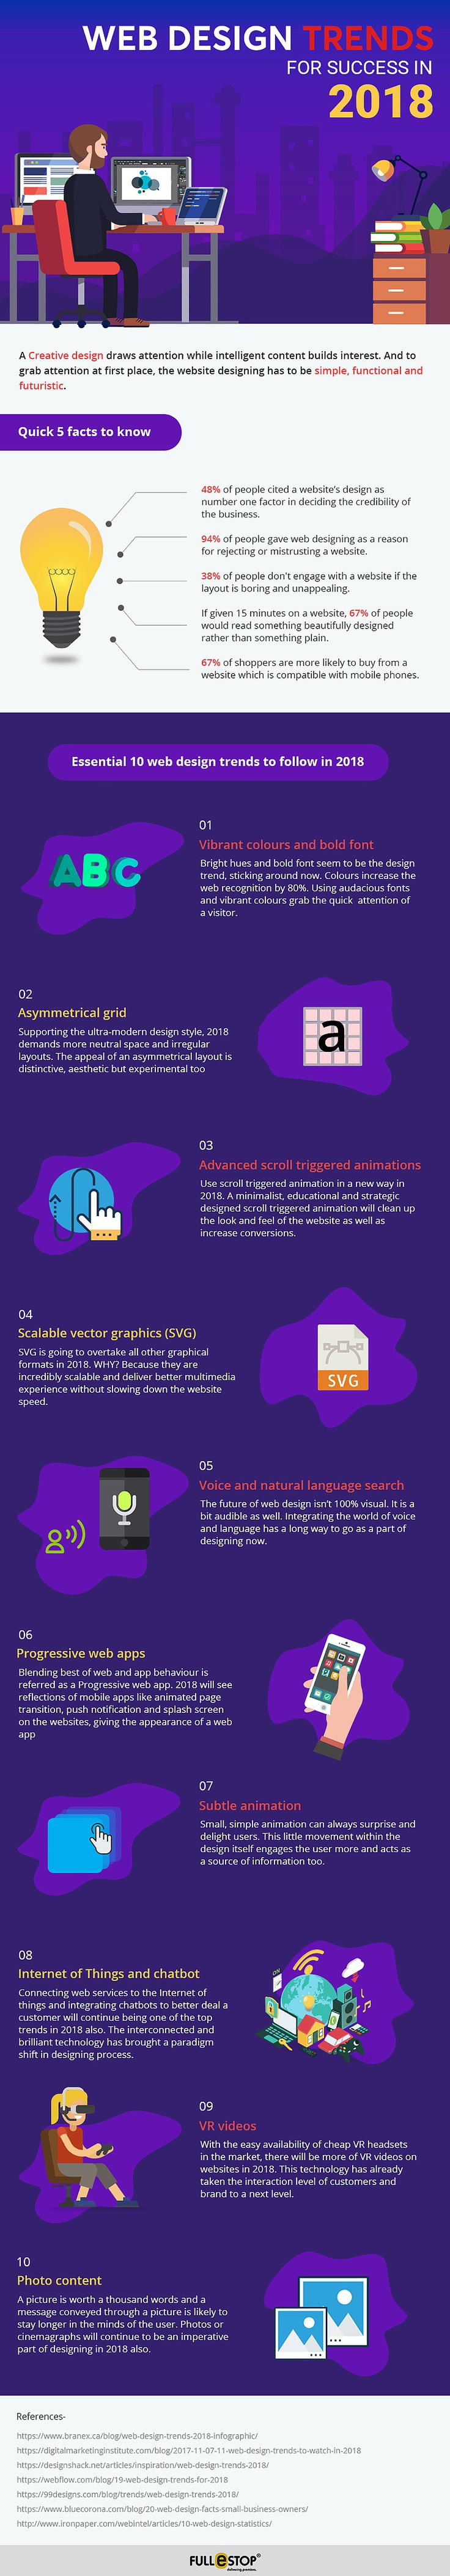 [Infographic] Here are some web design trends for success in 2018